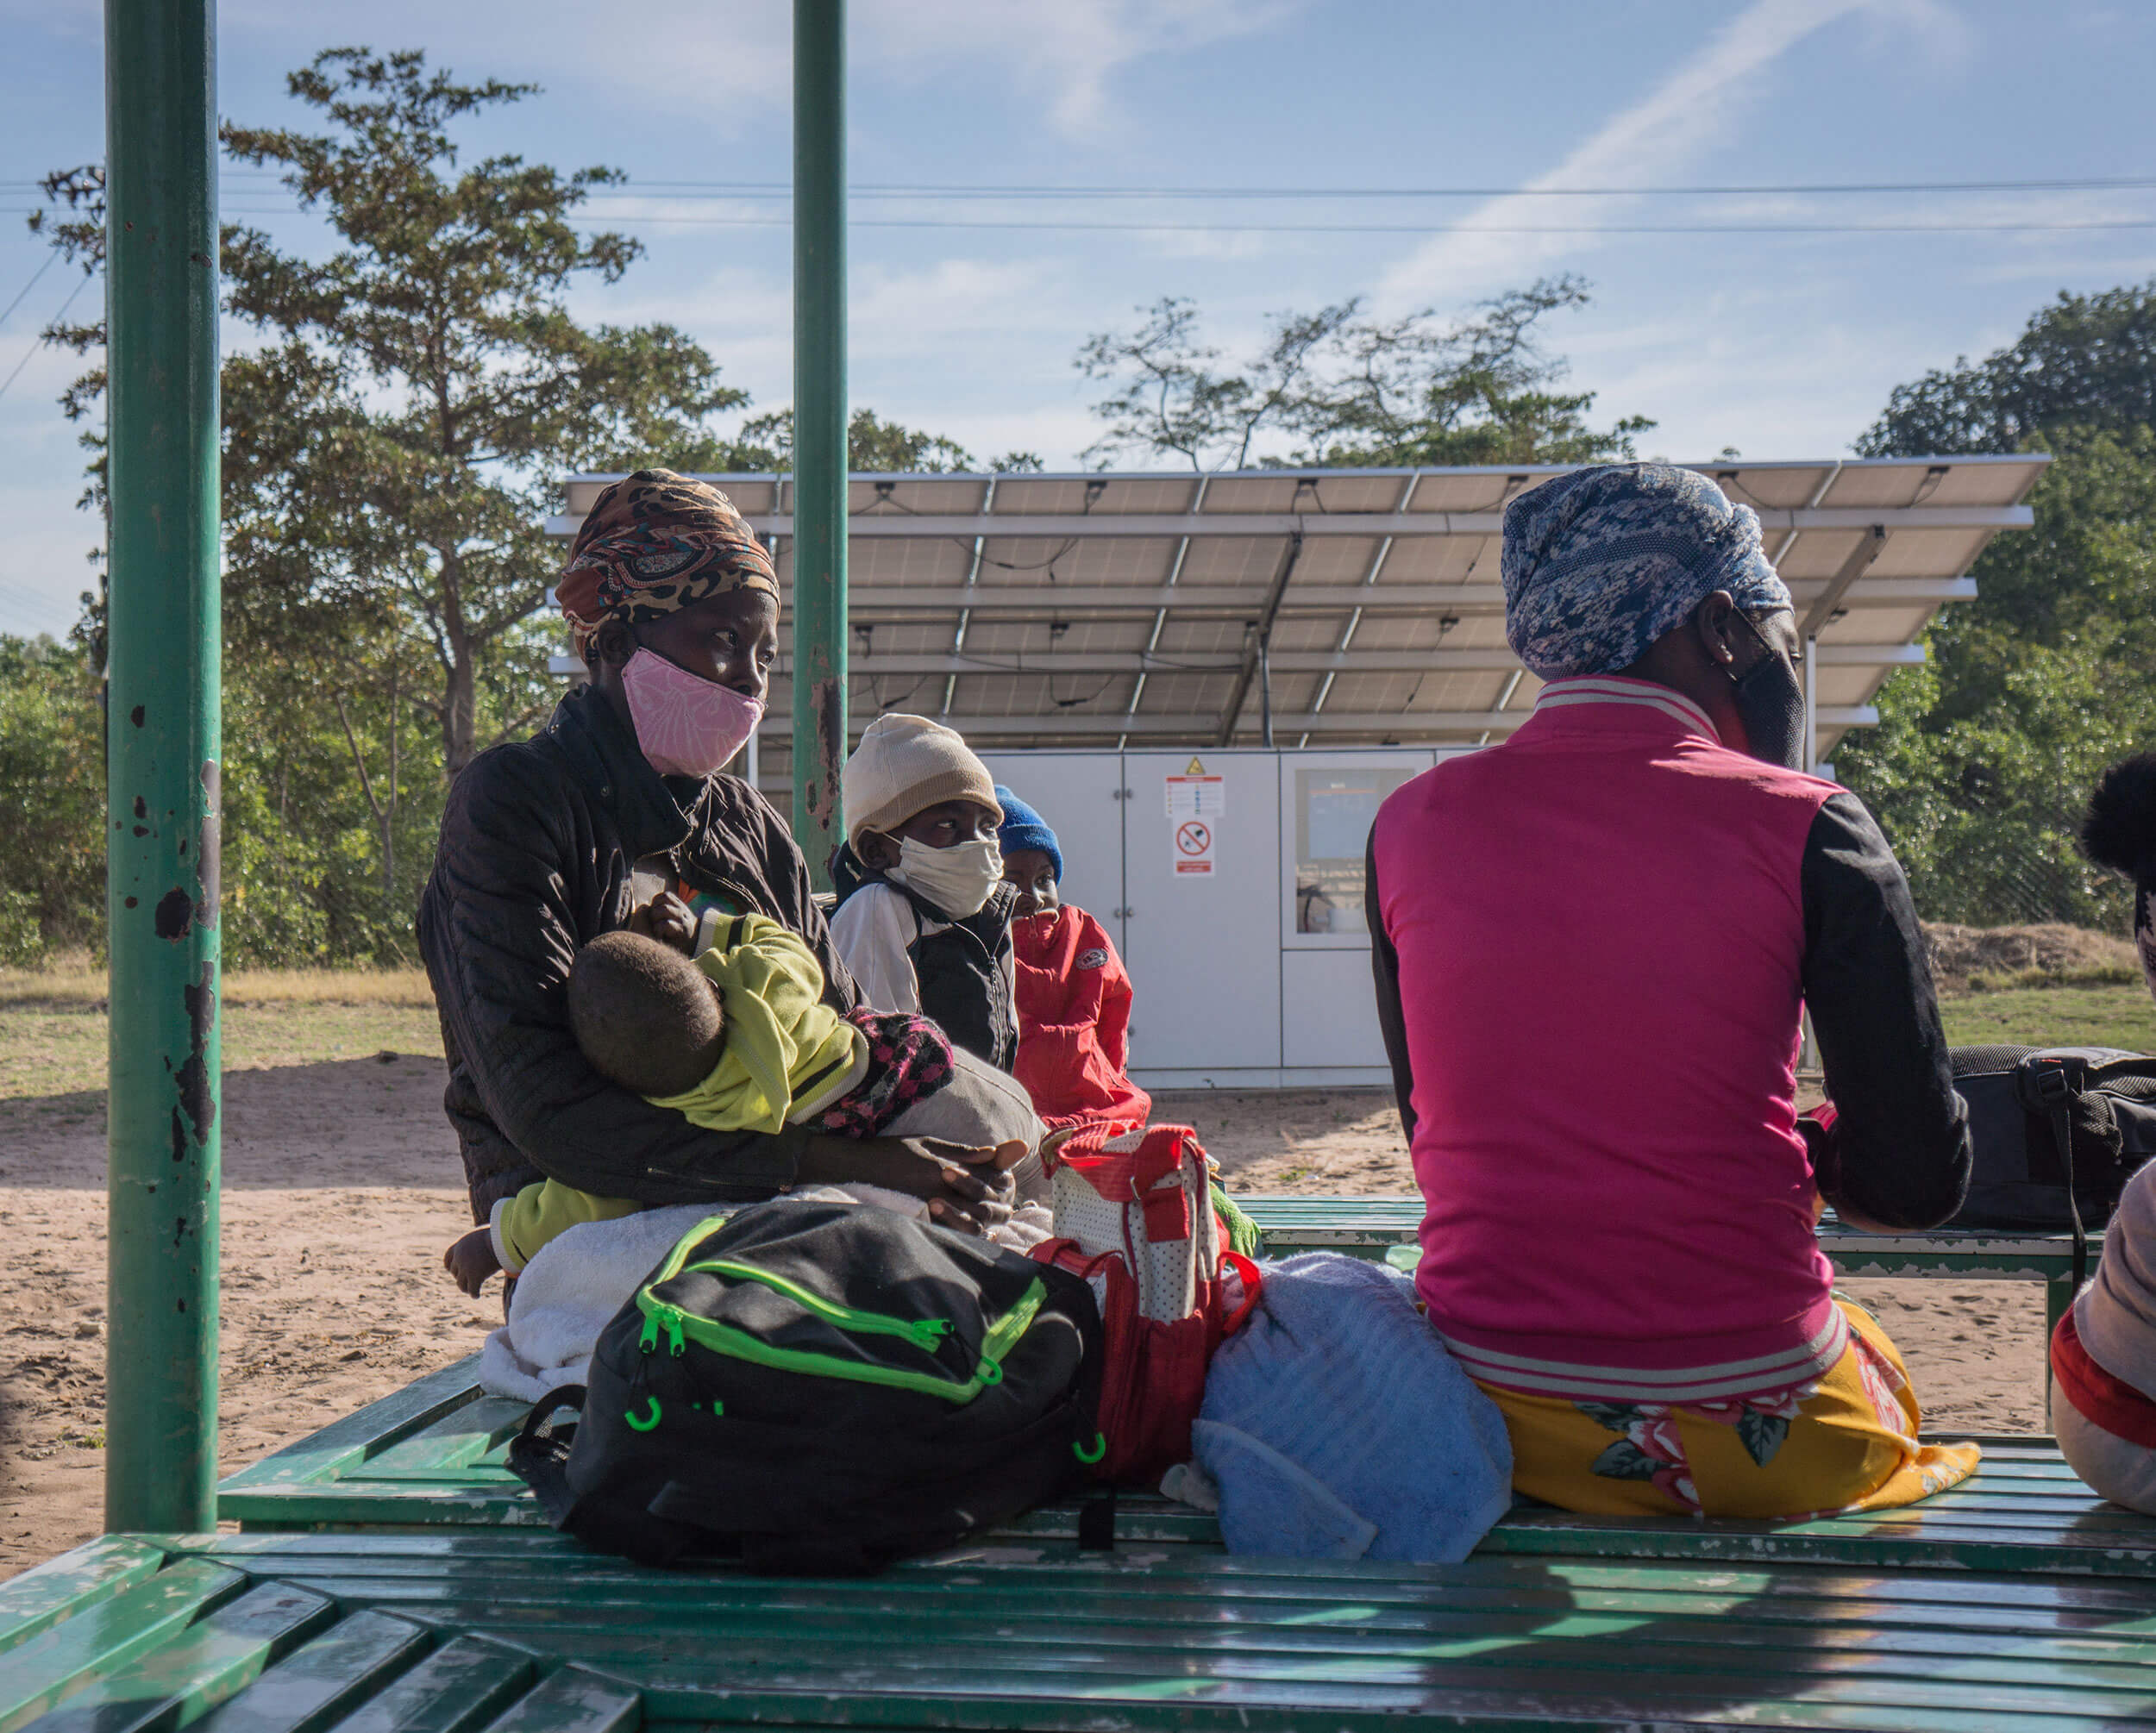 We've established three shelters for mothers and newborns in Nkayi, where mothers can stay overnight to access maternal healthcare.